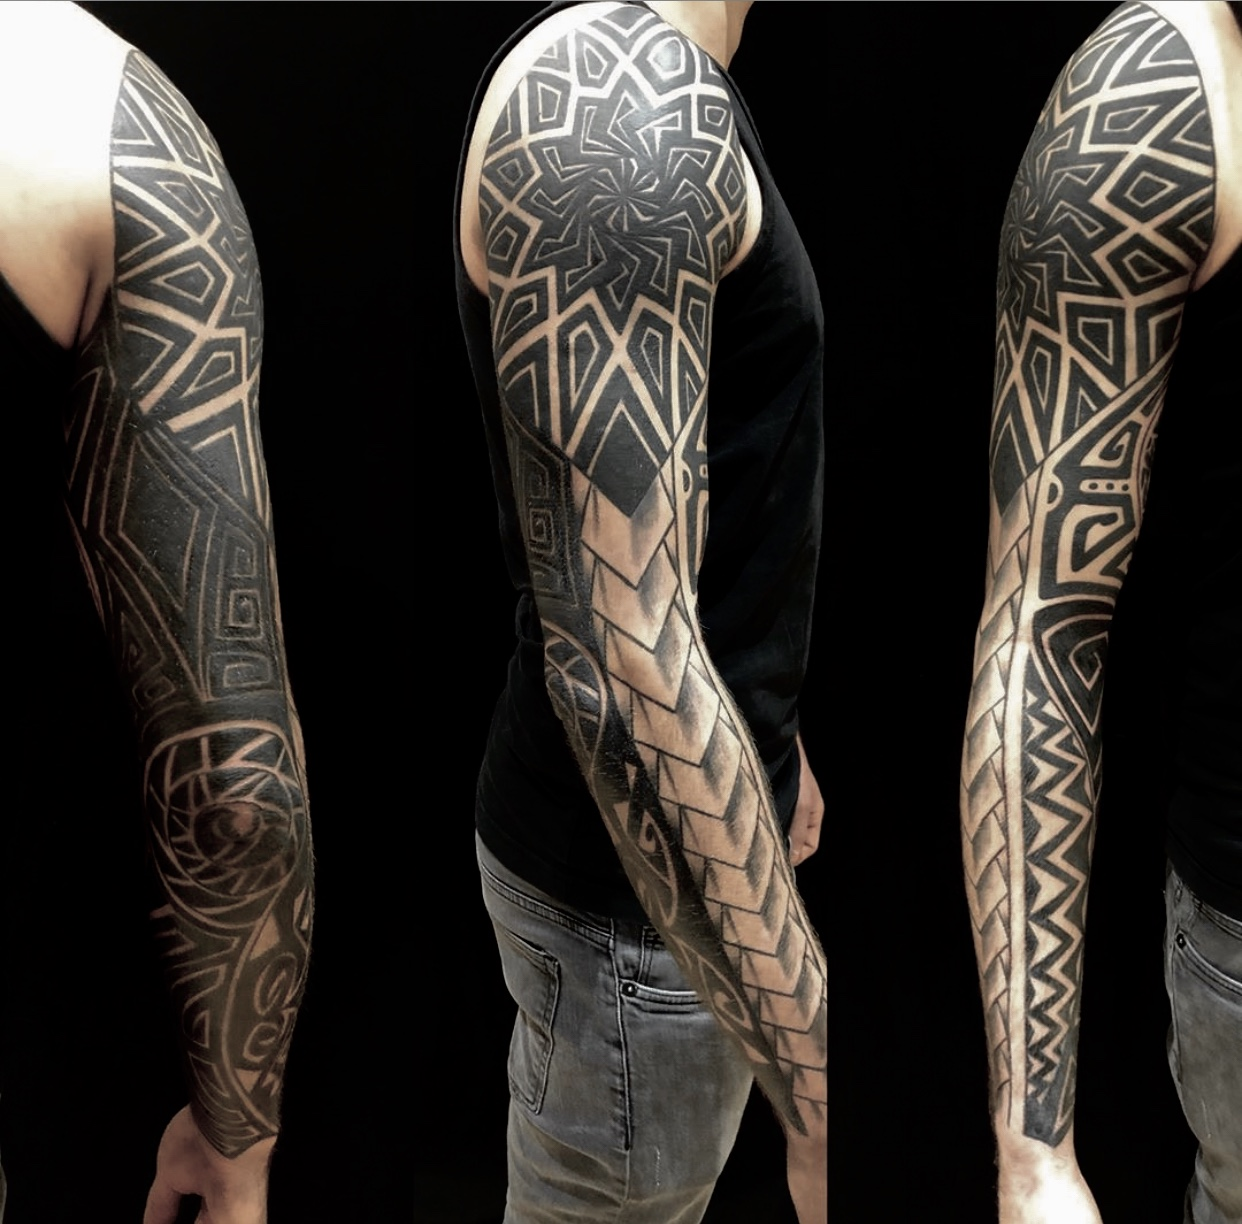 tattoo studio anansi münchen geometrisch black full sleeve gross black work best bestes bester gtgd